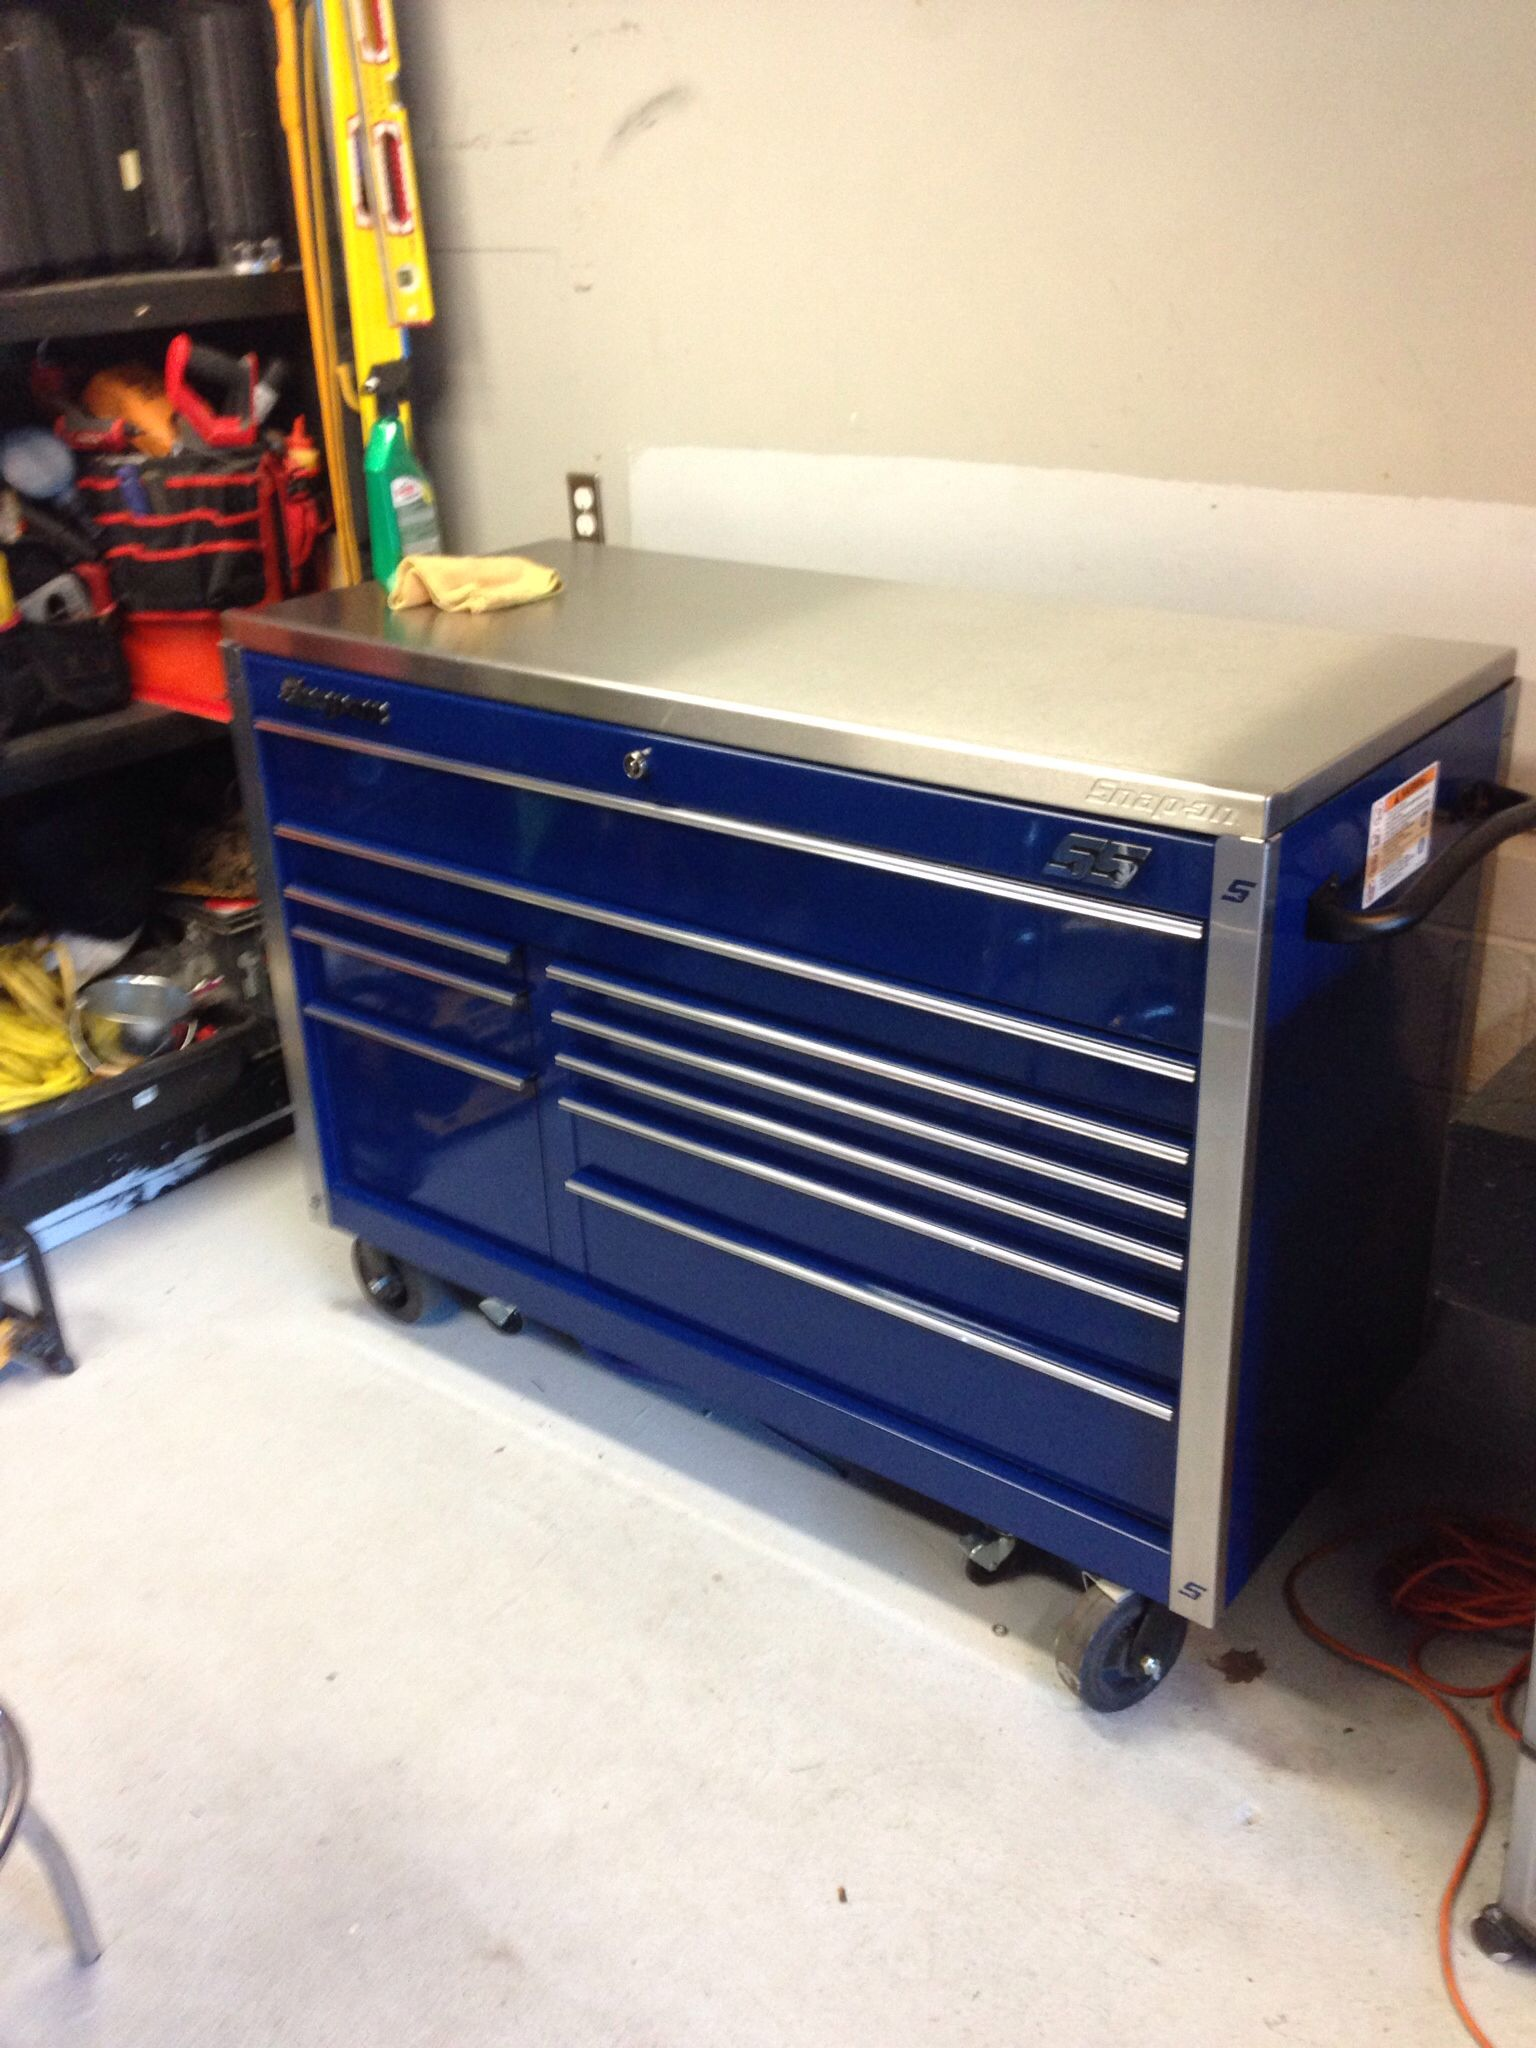 My tool box snap on Classic 78 | Blue things | Pinterest